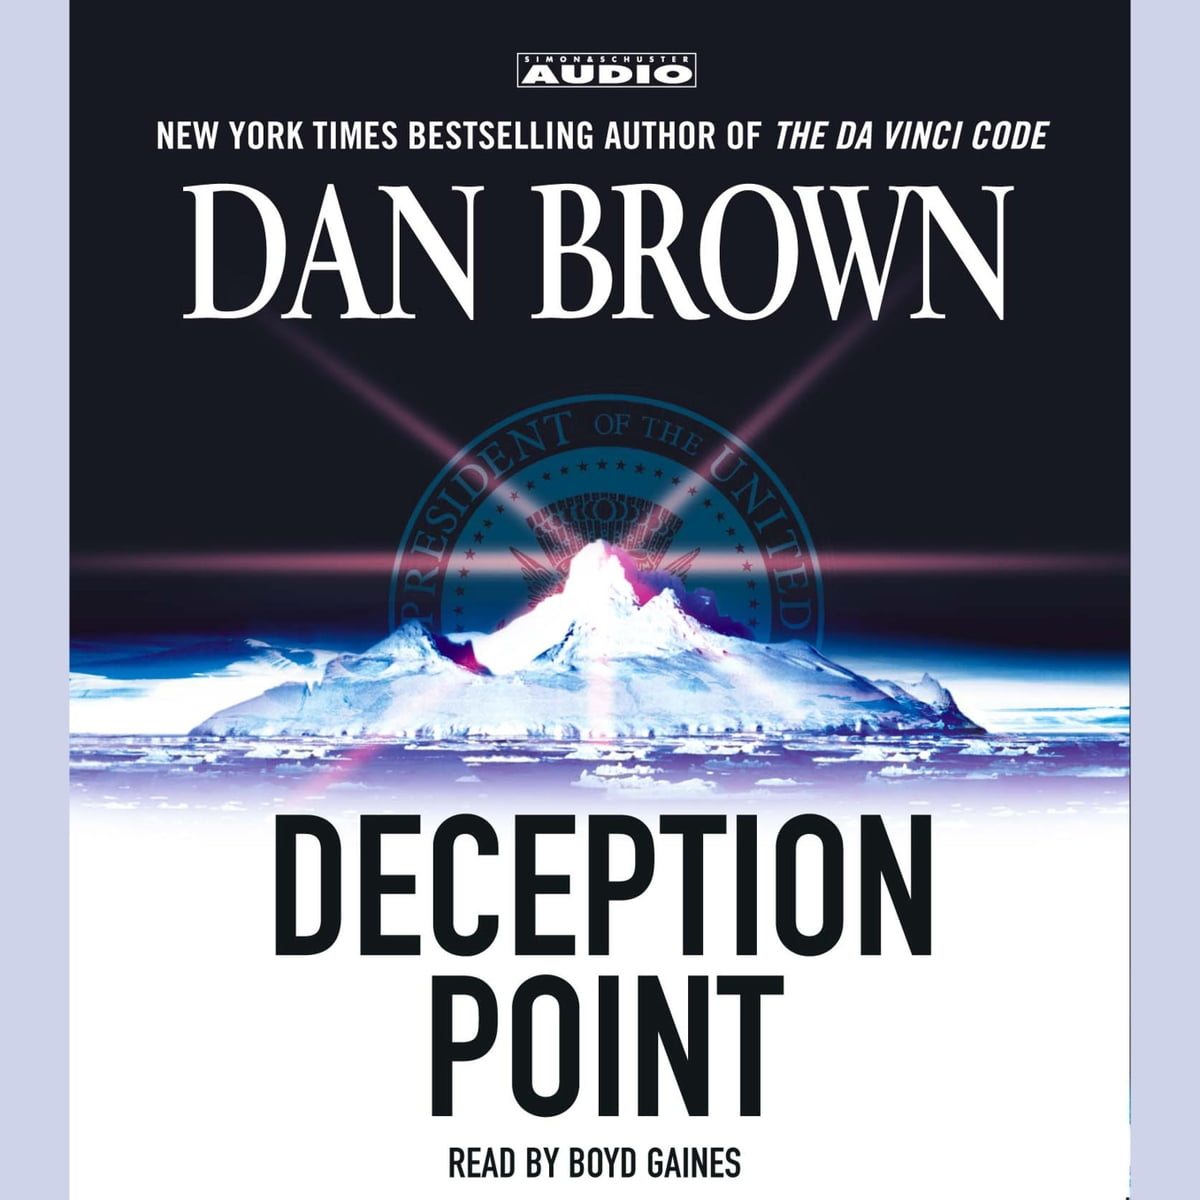 Deception point audiobook by dan brown 9780743550215 rakuten kobo buycottarizona